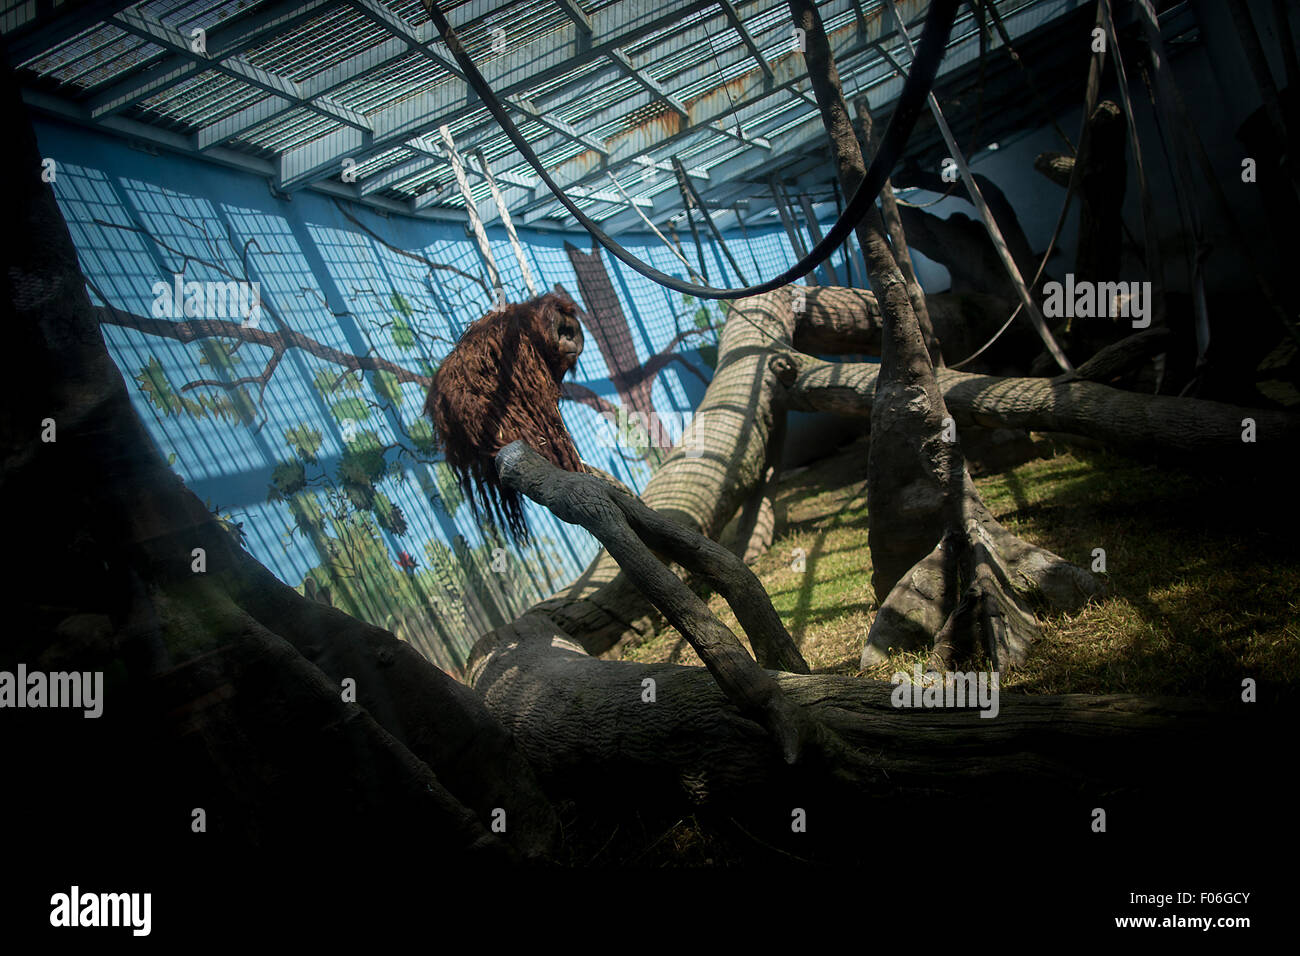 Mexico City. 3rd Aug, 2015. Image taken on Aug. 3, 2015 shows the Orangutan 'Toto', staying inside its exhibitor - Stock Image